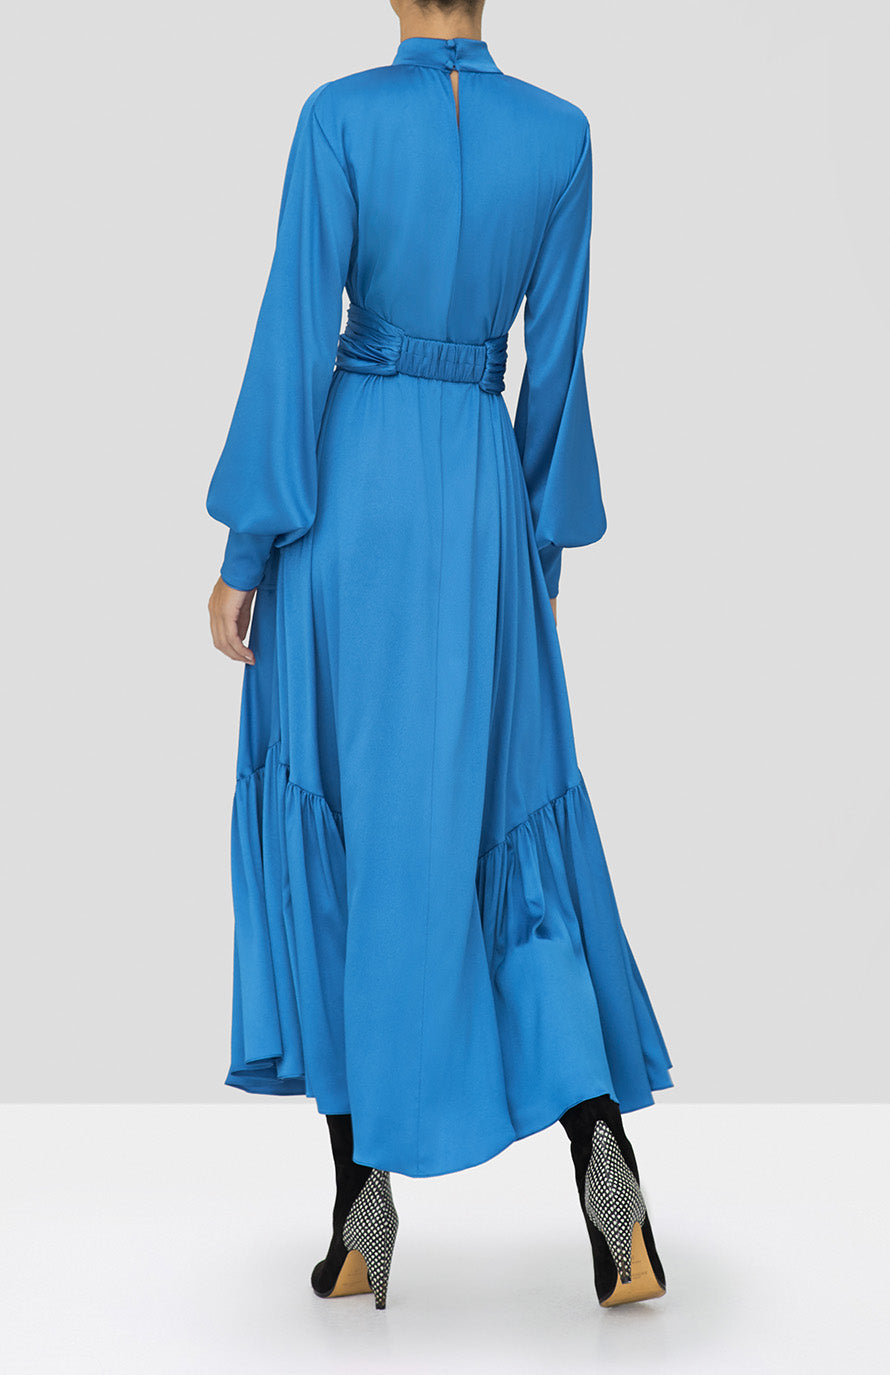 Alexis Calypsa Dress in Azure Blue from the Holiday 2019 Ready To Wear Collection - Rear View